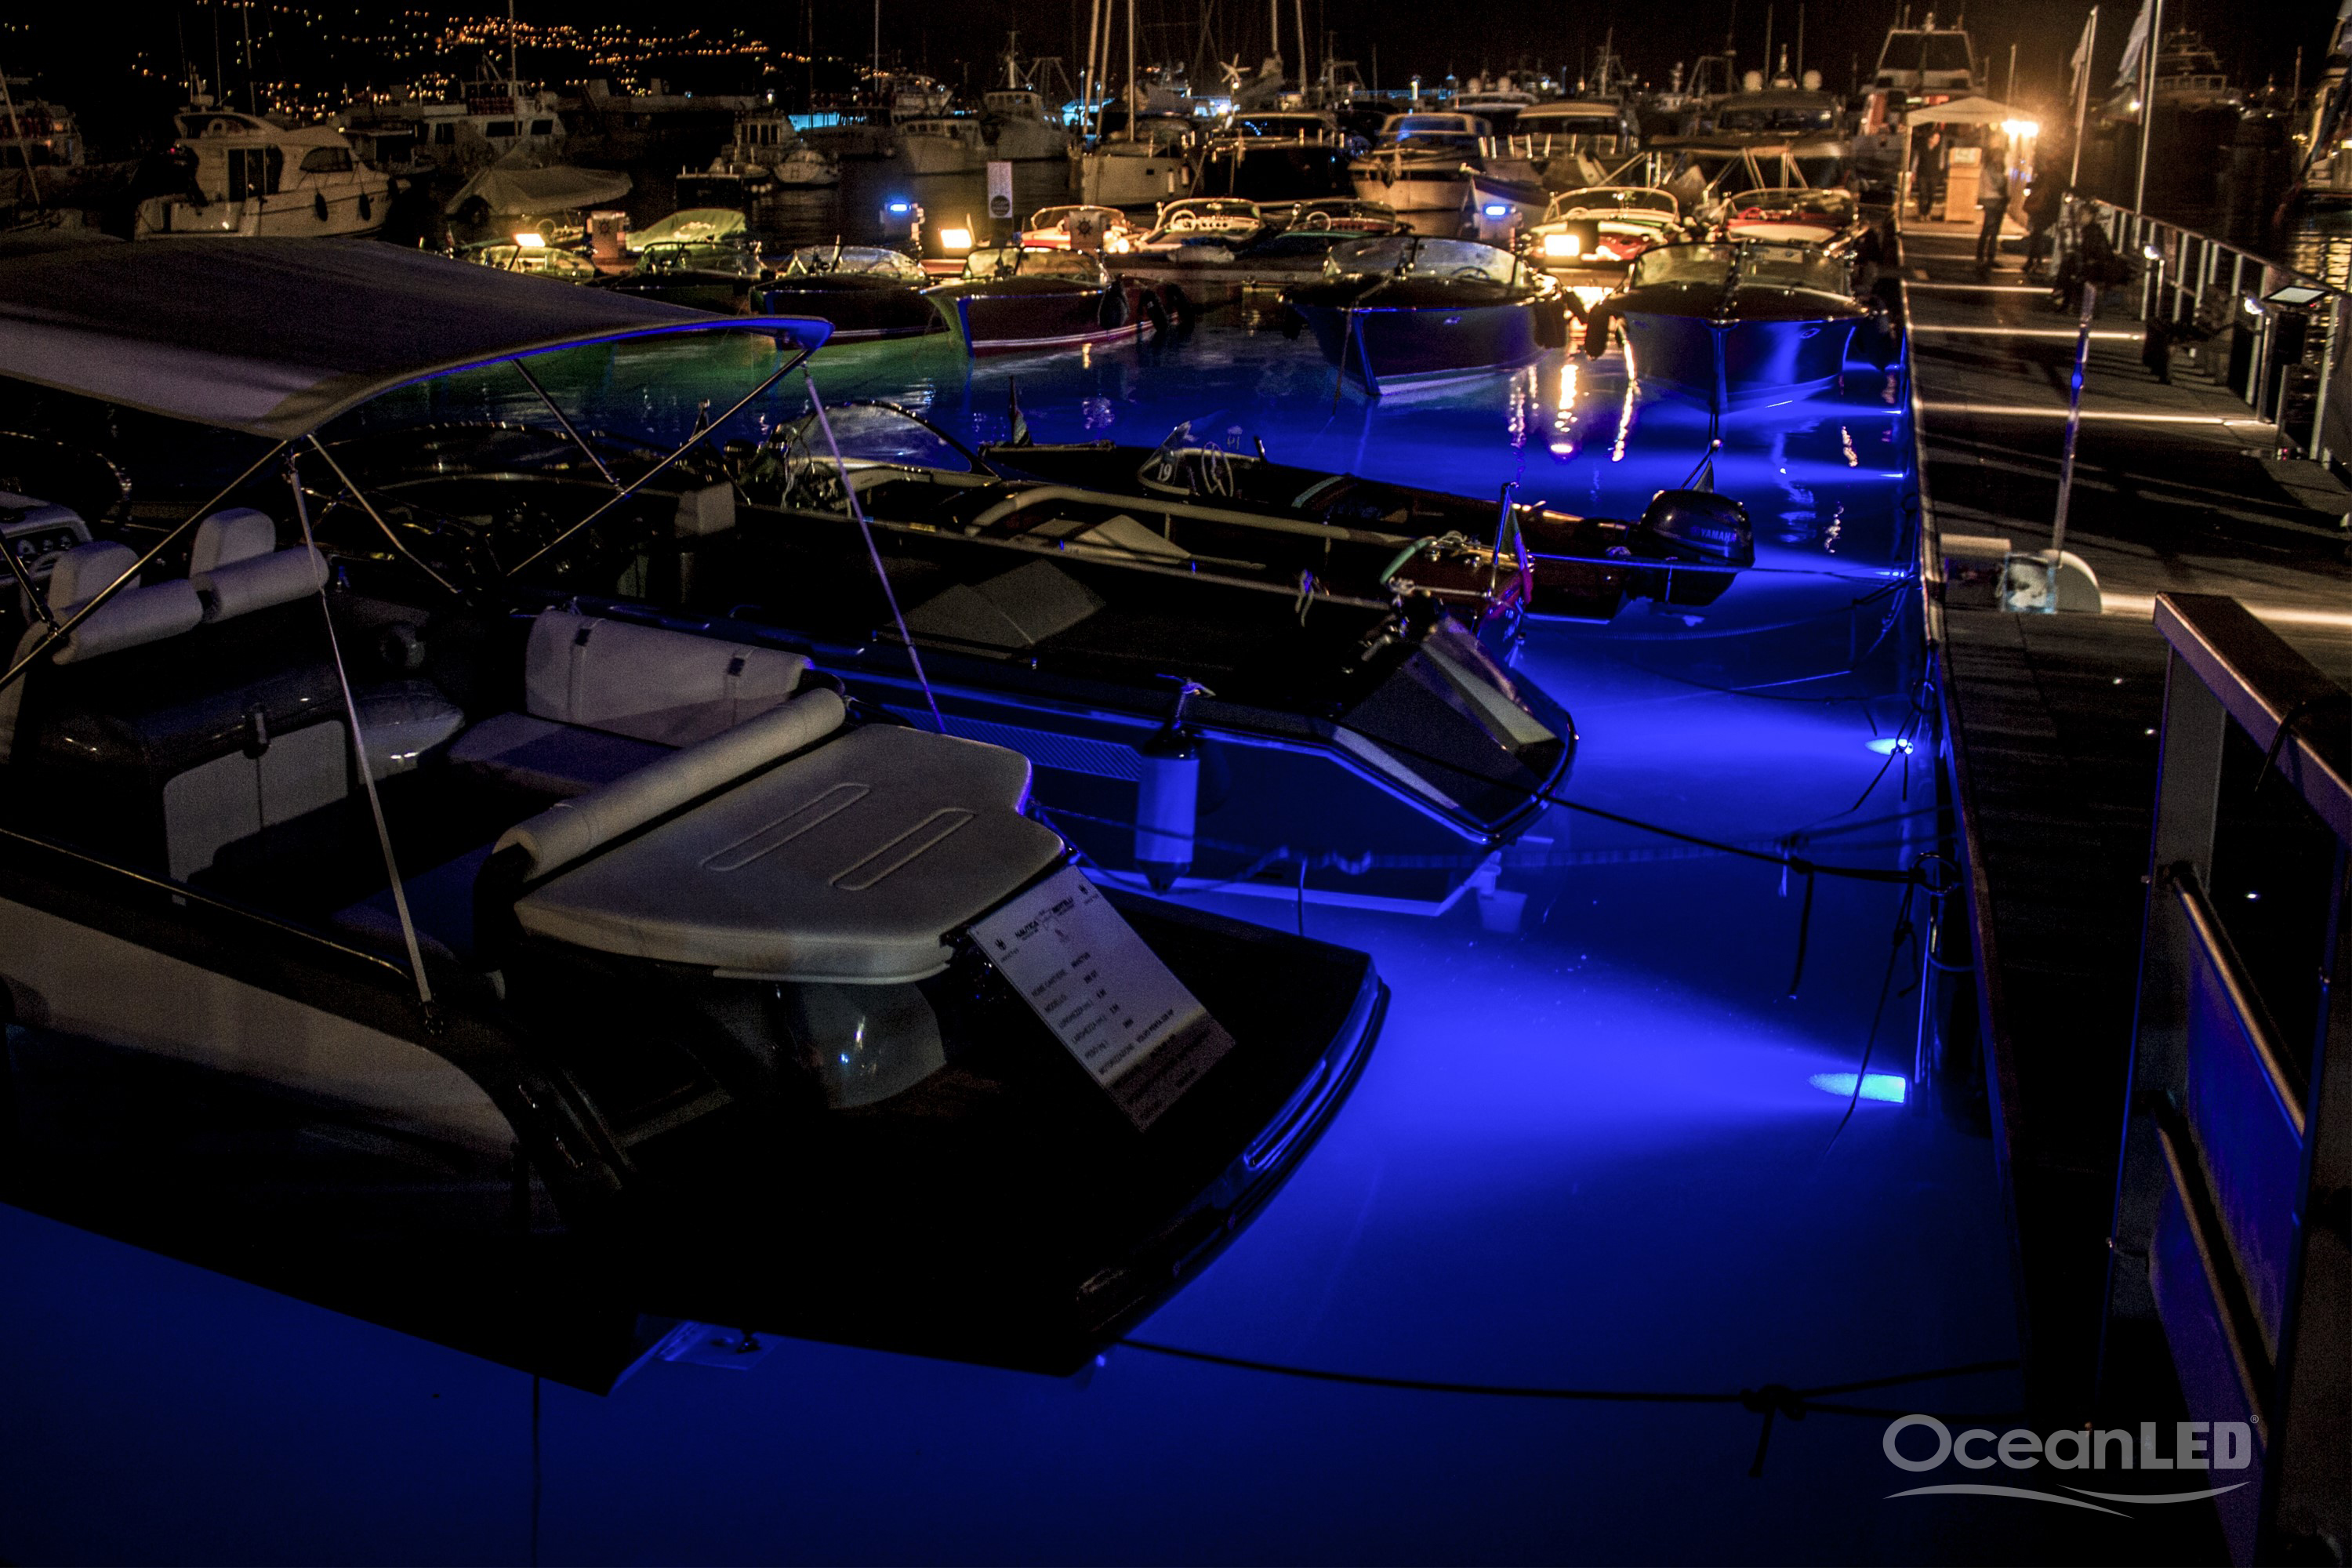 a new product launch from OceanLED -- the XD16 Xtreme Dock Series.